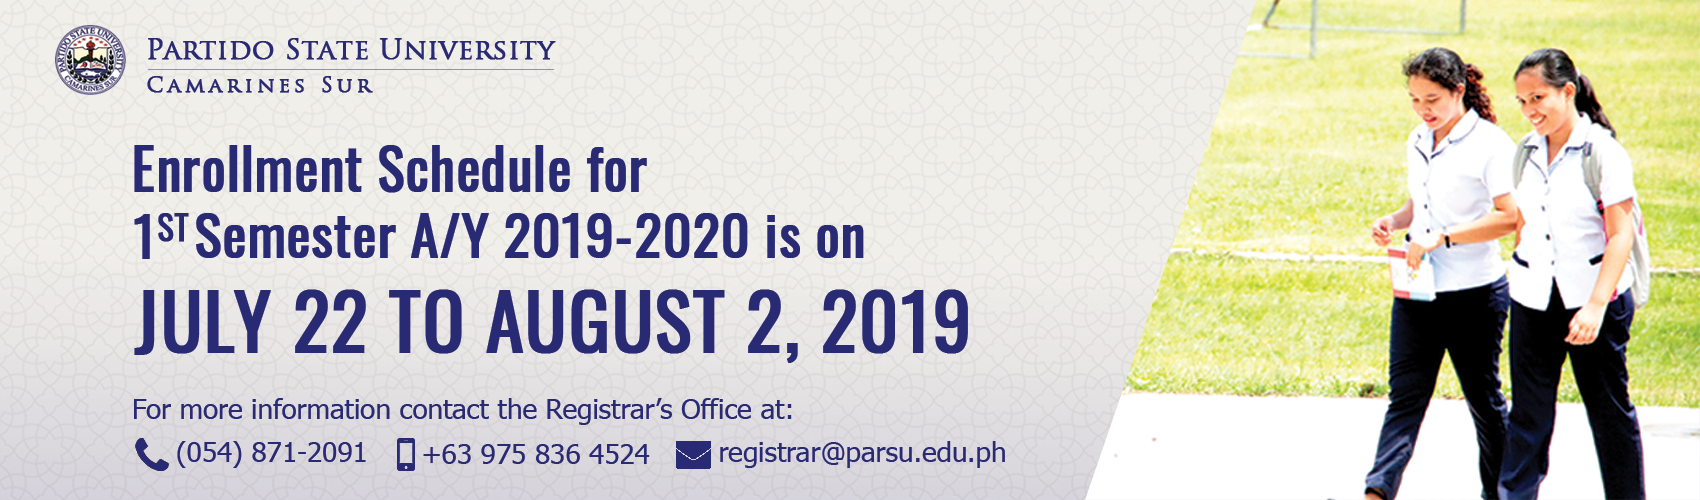 Enrollment Schedule 2019-2020